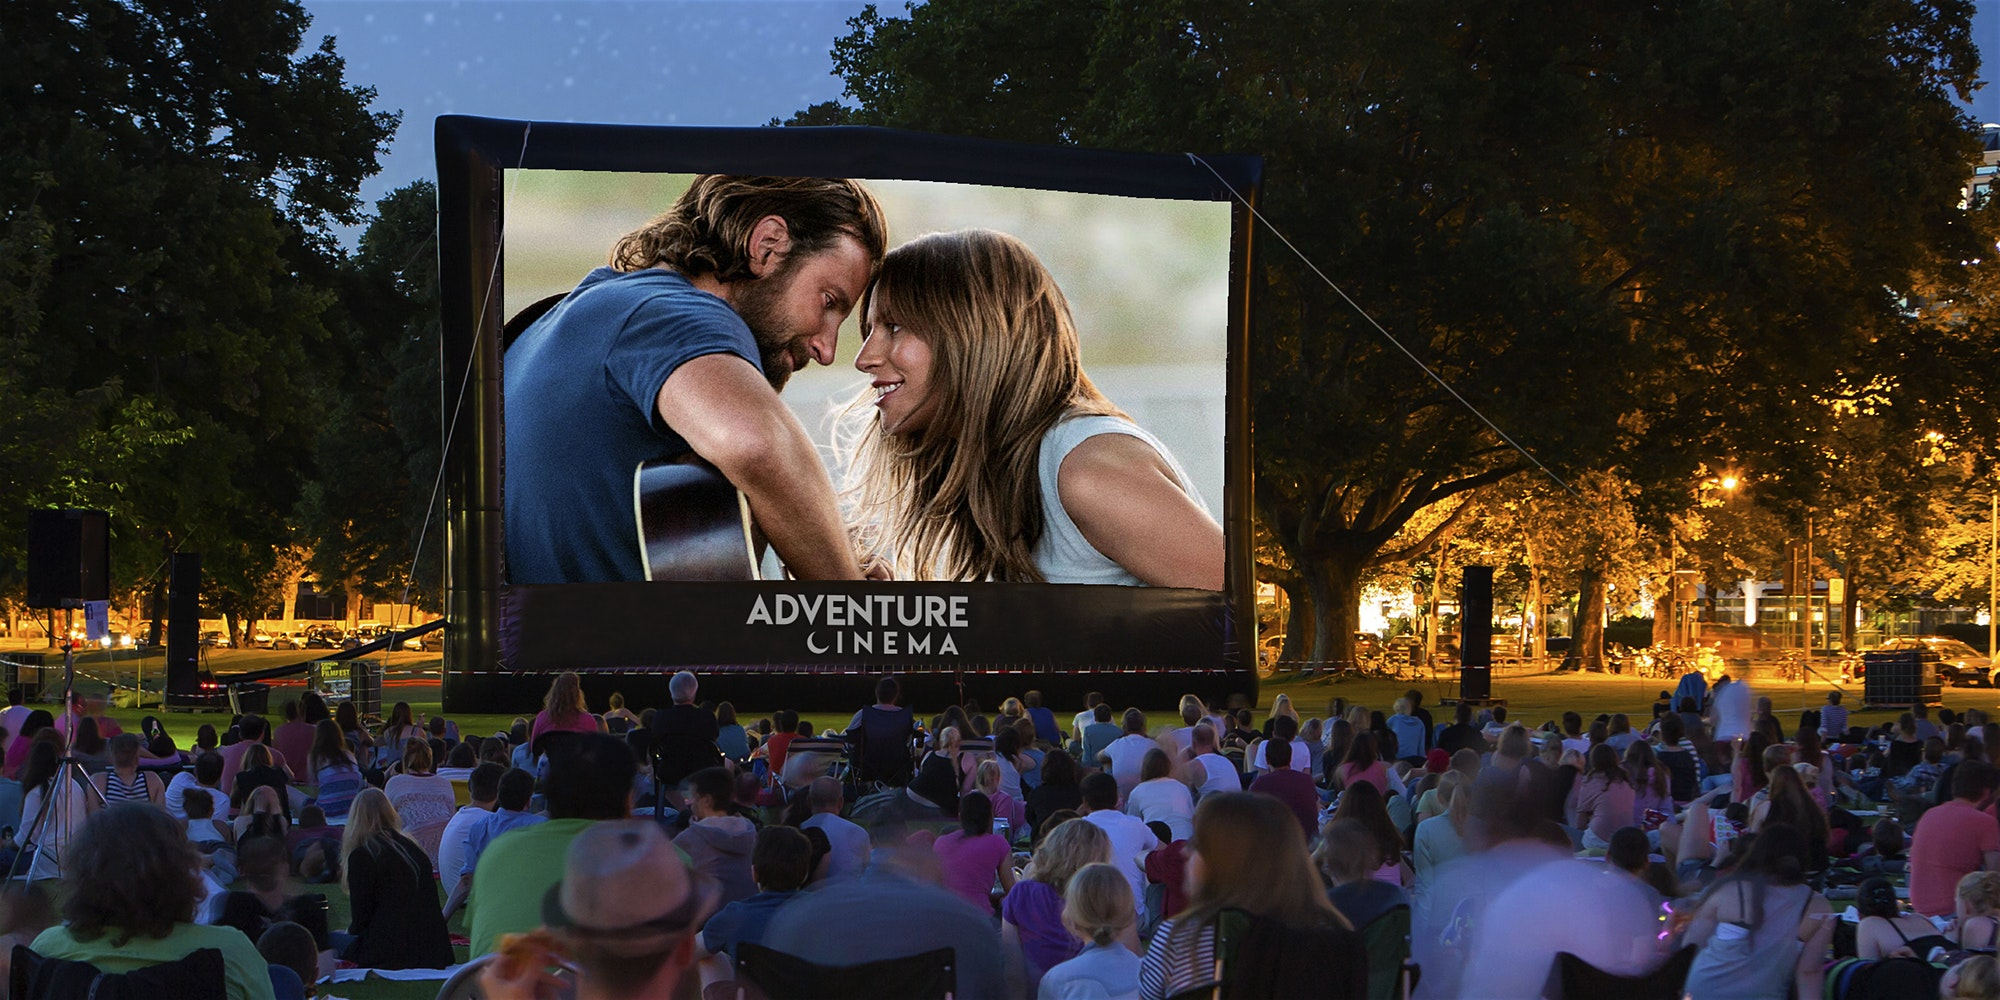 A Star is Born Outdoor Cinema Experience